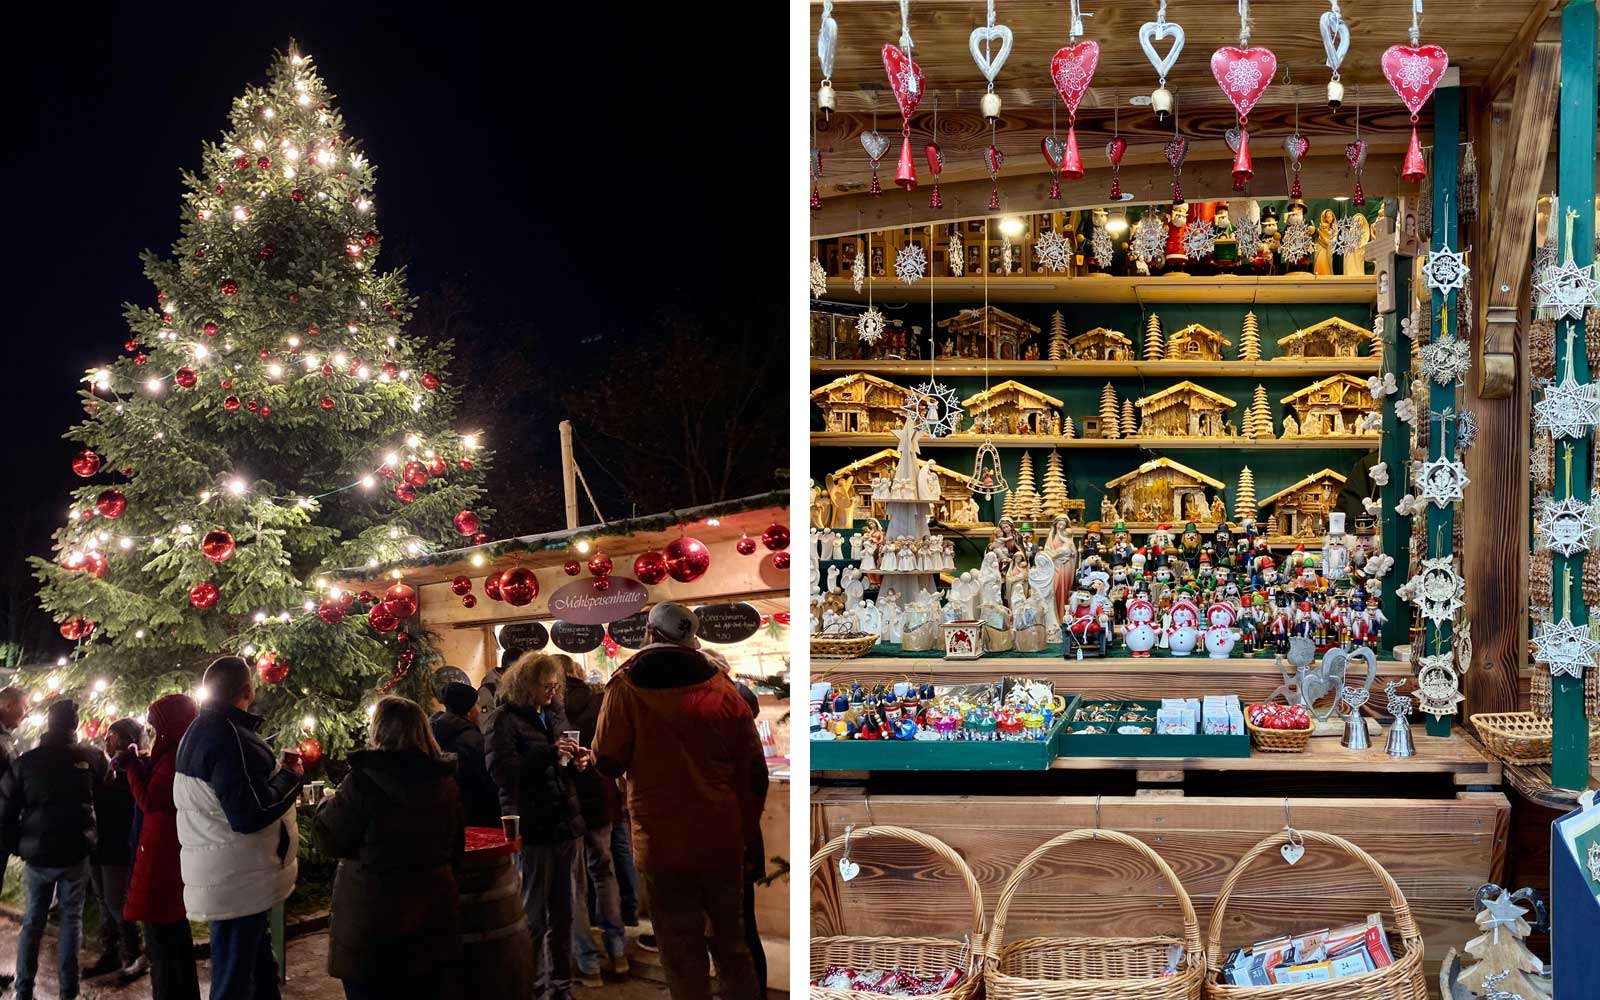 Views of the Christmas Market in Salzburg, Austria